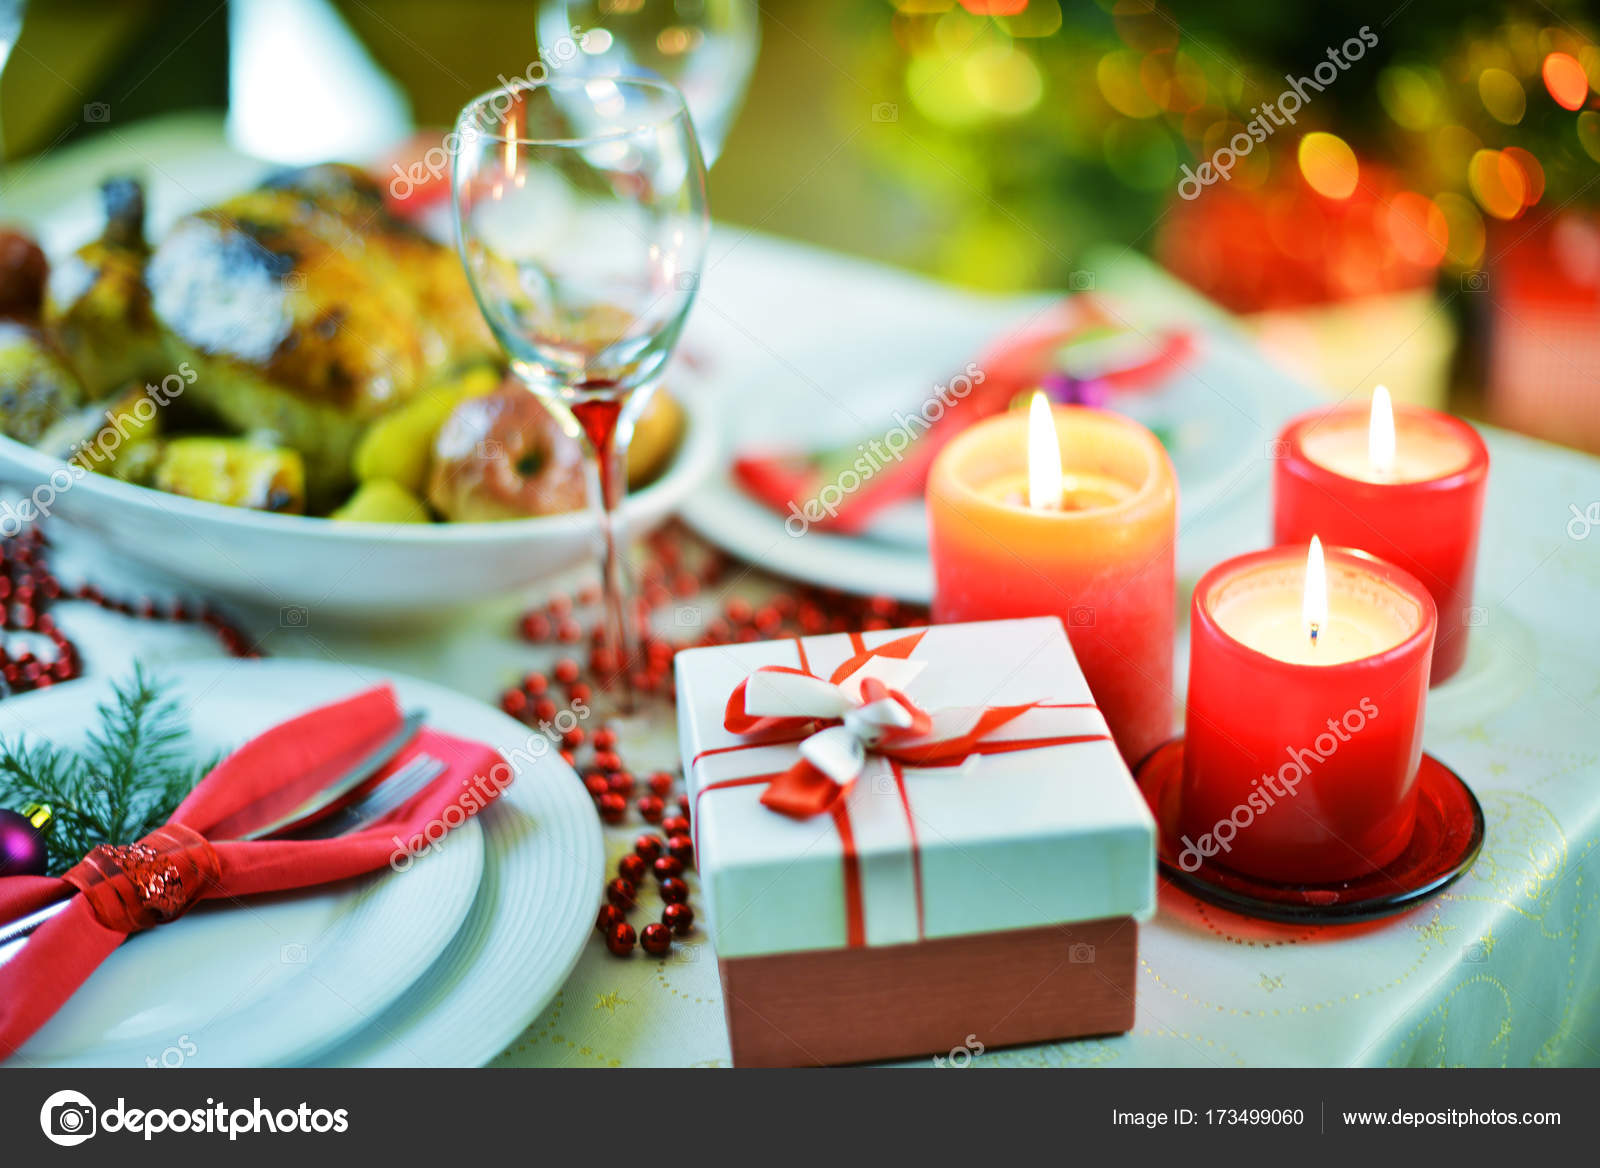 Closeup shot of beautiful table setting for Christmas dinner with little gift box and candles u2014 Photo by Taden1 & table setting for Christmas dinner u2014 Stock Photo © Taden1 #173499060